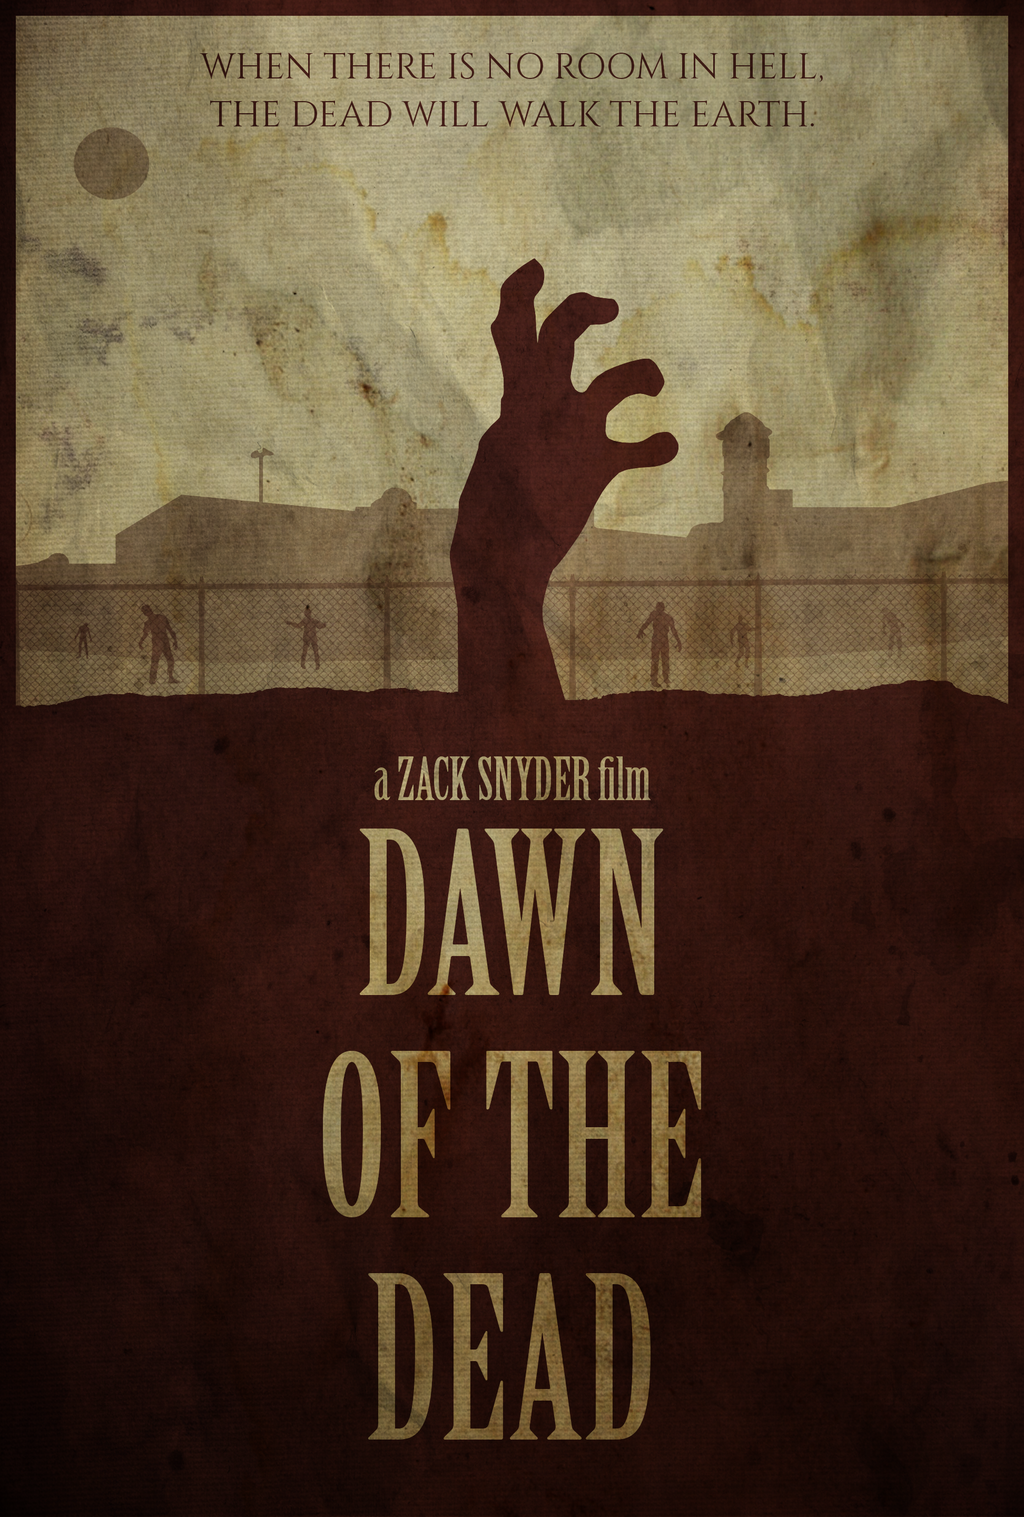 Rosie - Dawn of the Dead (2004) Poster by edwardjmoran on ...